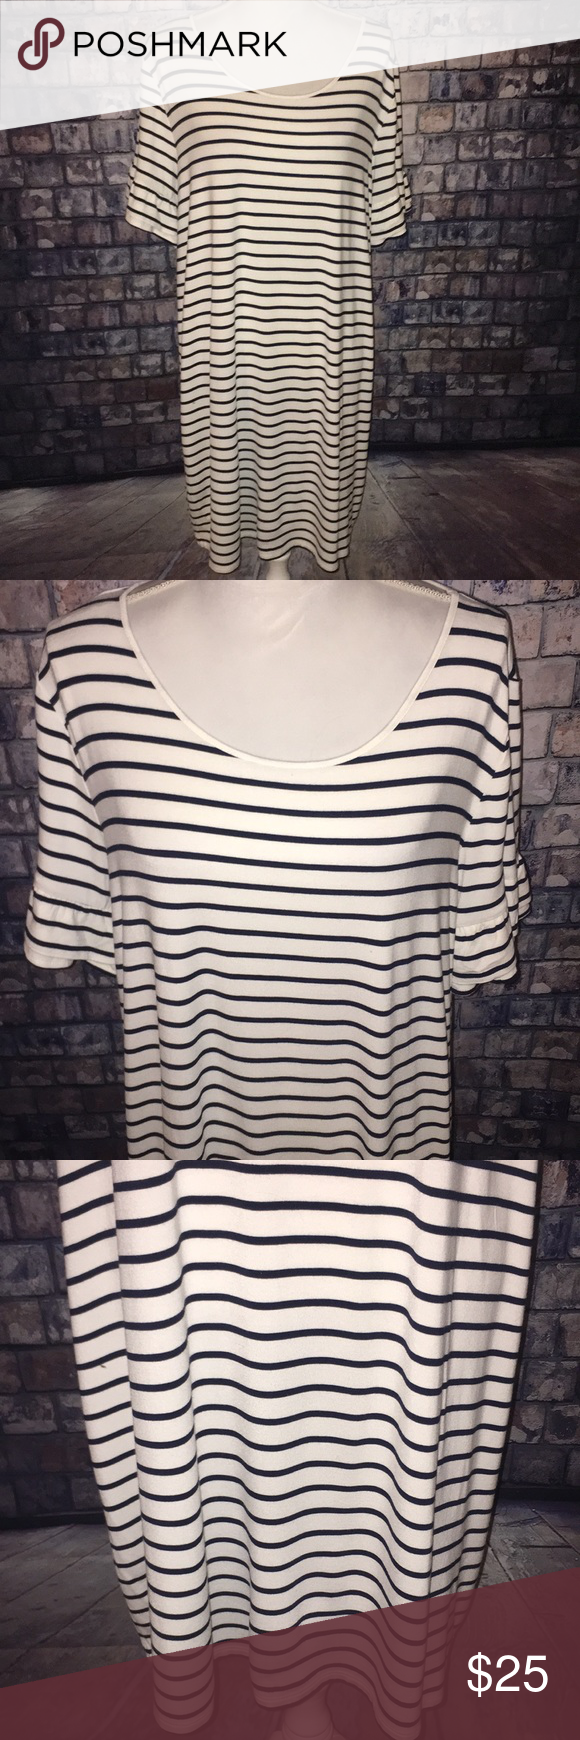 80b15bf639 MAURICE XL STRIPED DRESS WITH RUFFLED SHORT SLEEVE MAURICES 🖤 XL 🖤STRIPED DRESS  WITH RUFFLED